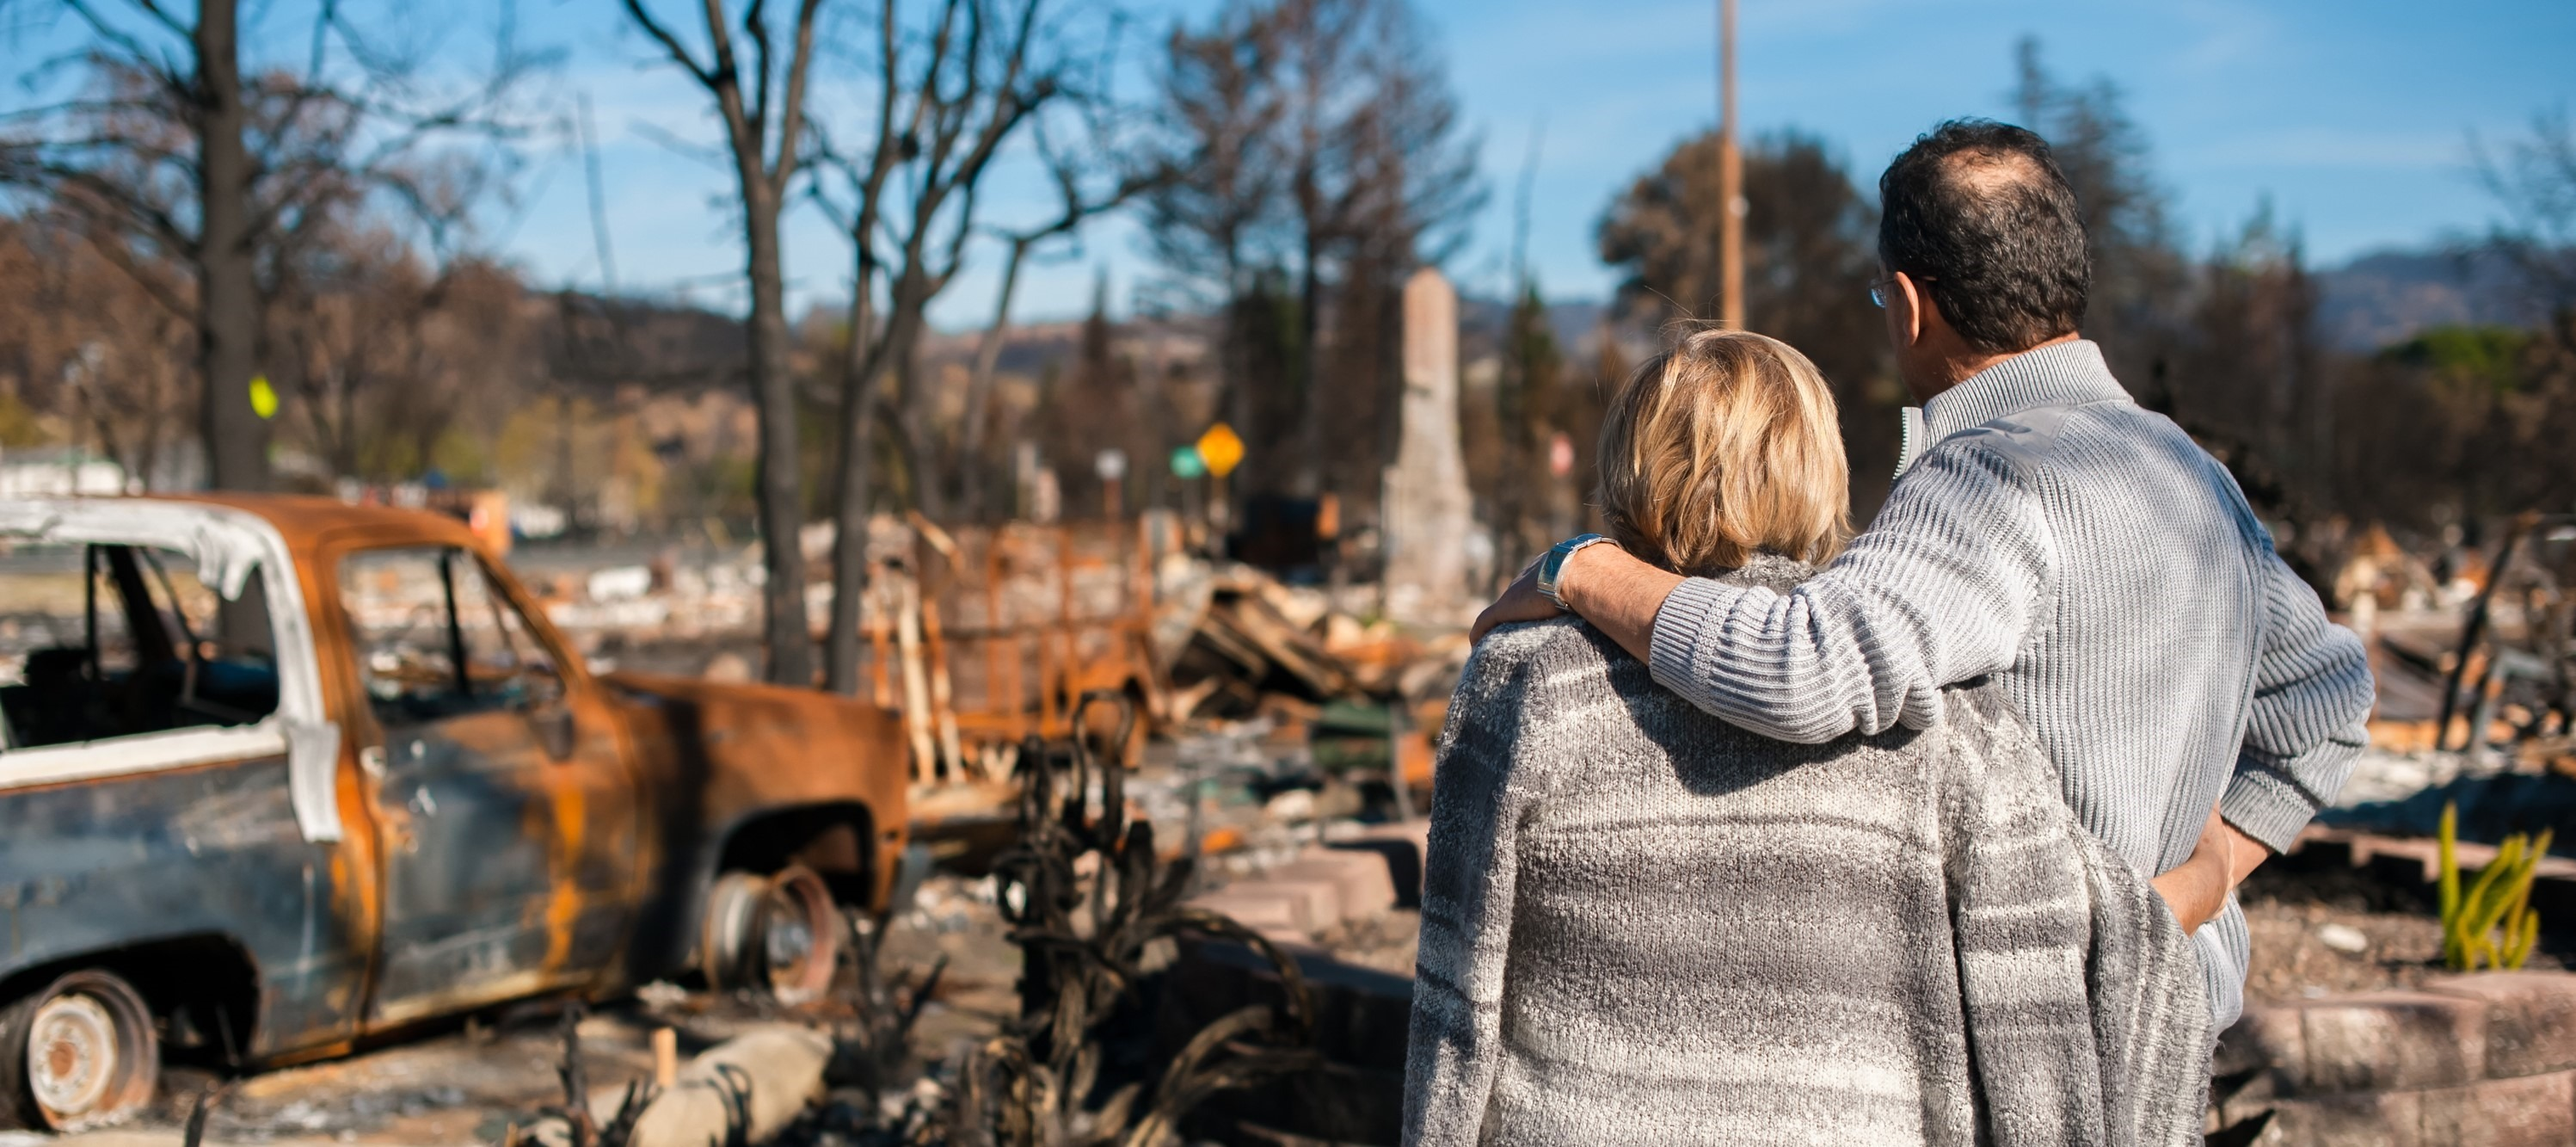 A man and woman stand arm-in-arm overlooking the remains of their house and neighborhood after a disaster.